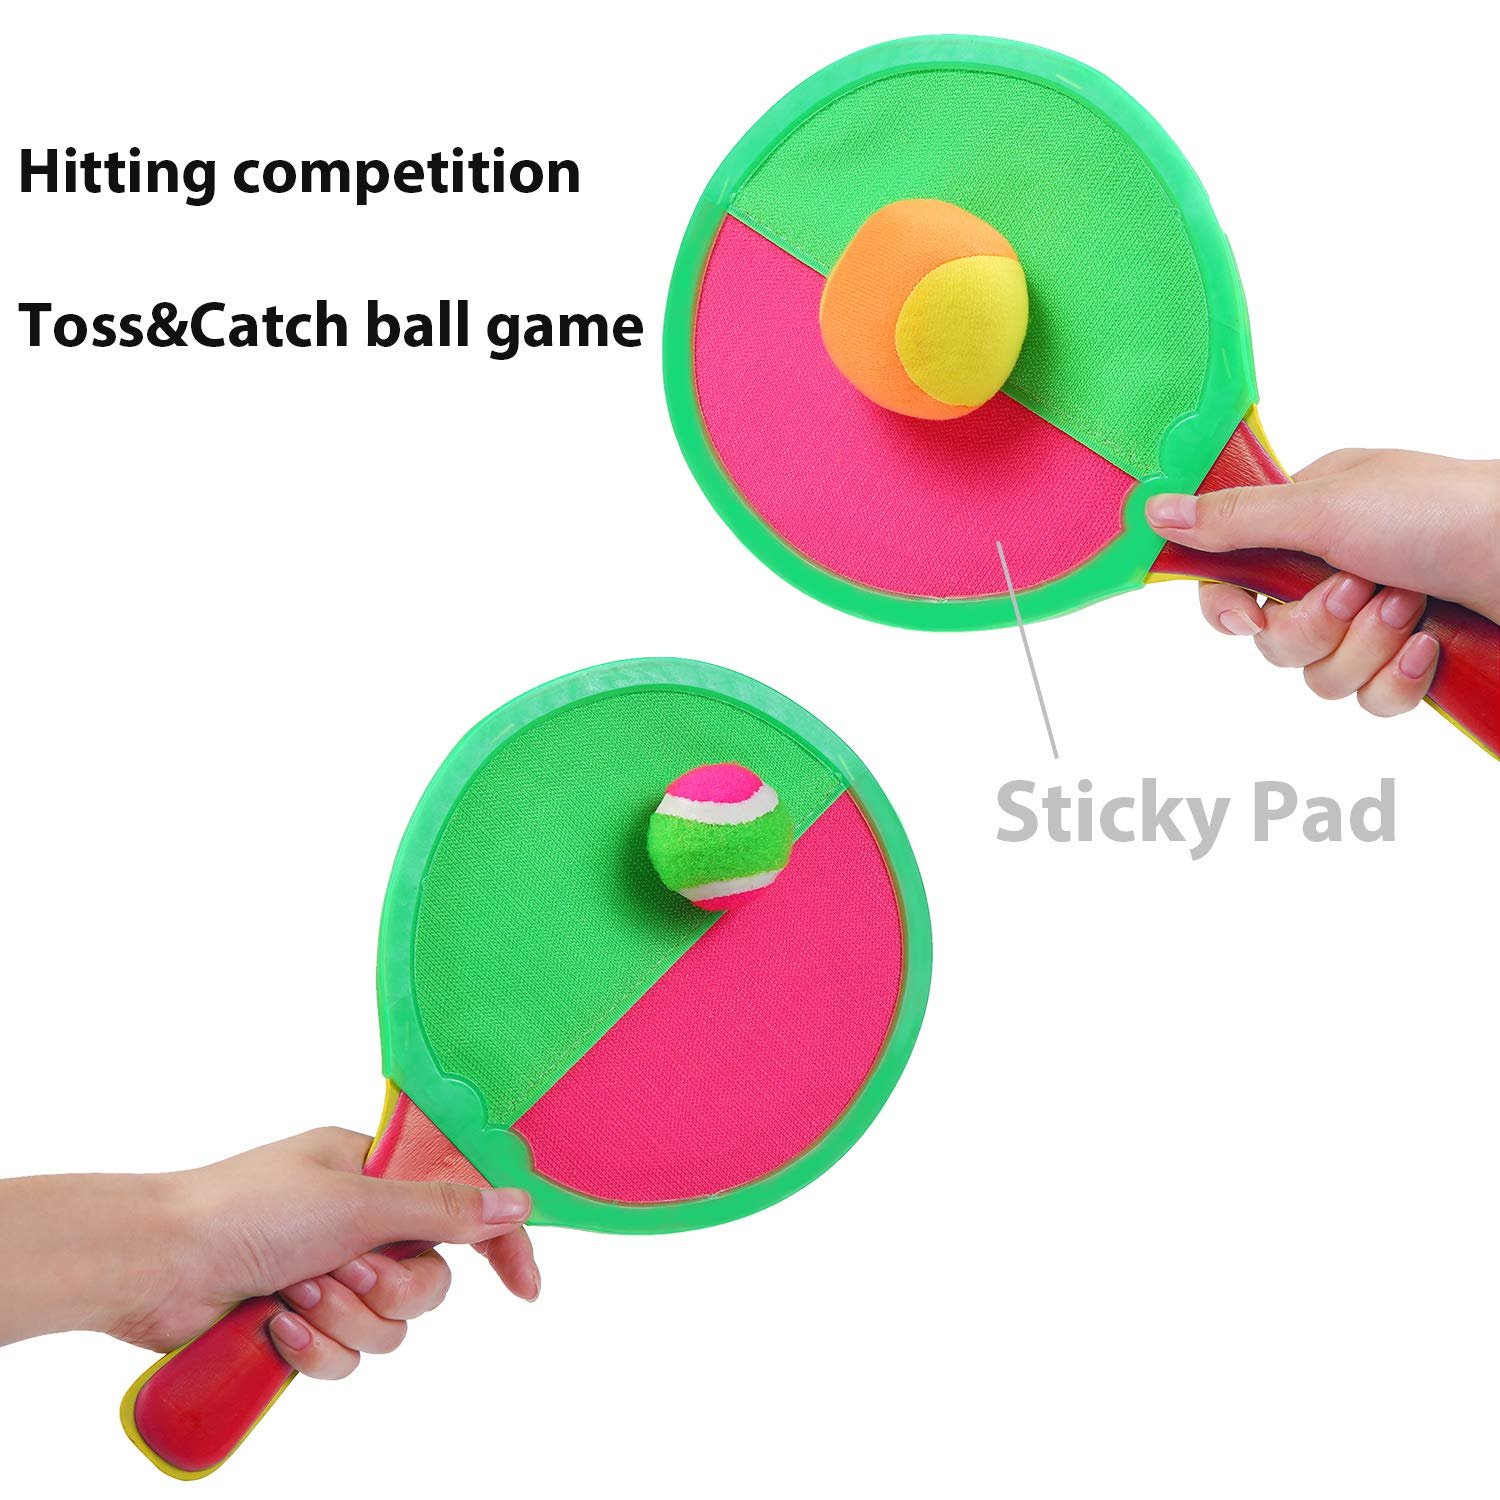 Tupa Toss and Catch Paddle Racket Game Set Indoor and Outdoor Toy Tennis Baseball Summer Game with Storage Bag 2 Paddles and 4 Balls